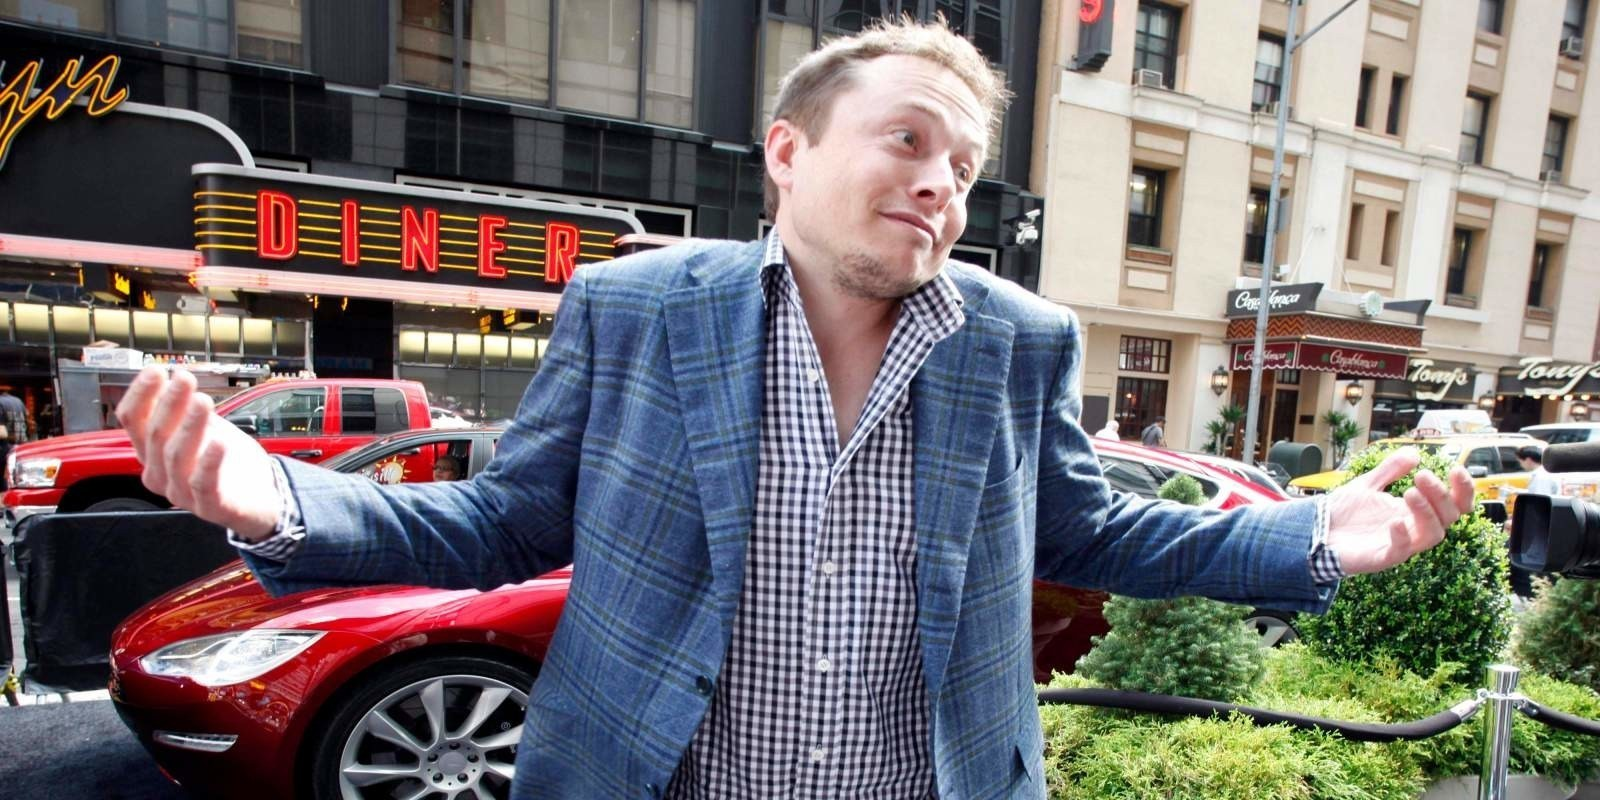 Tesla CEO Elon Musk takes to Twitter to soften comments on Apple, praise beautiful watch design